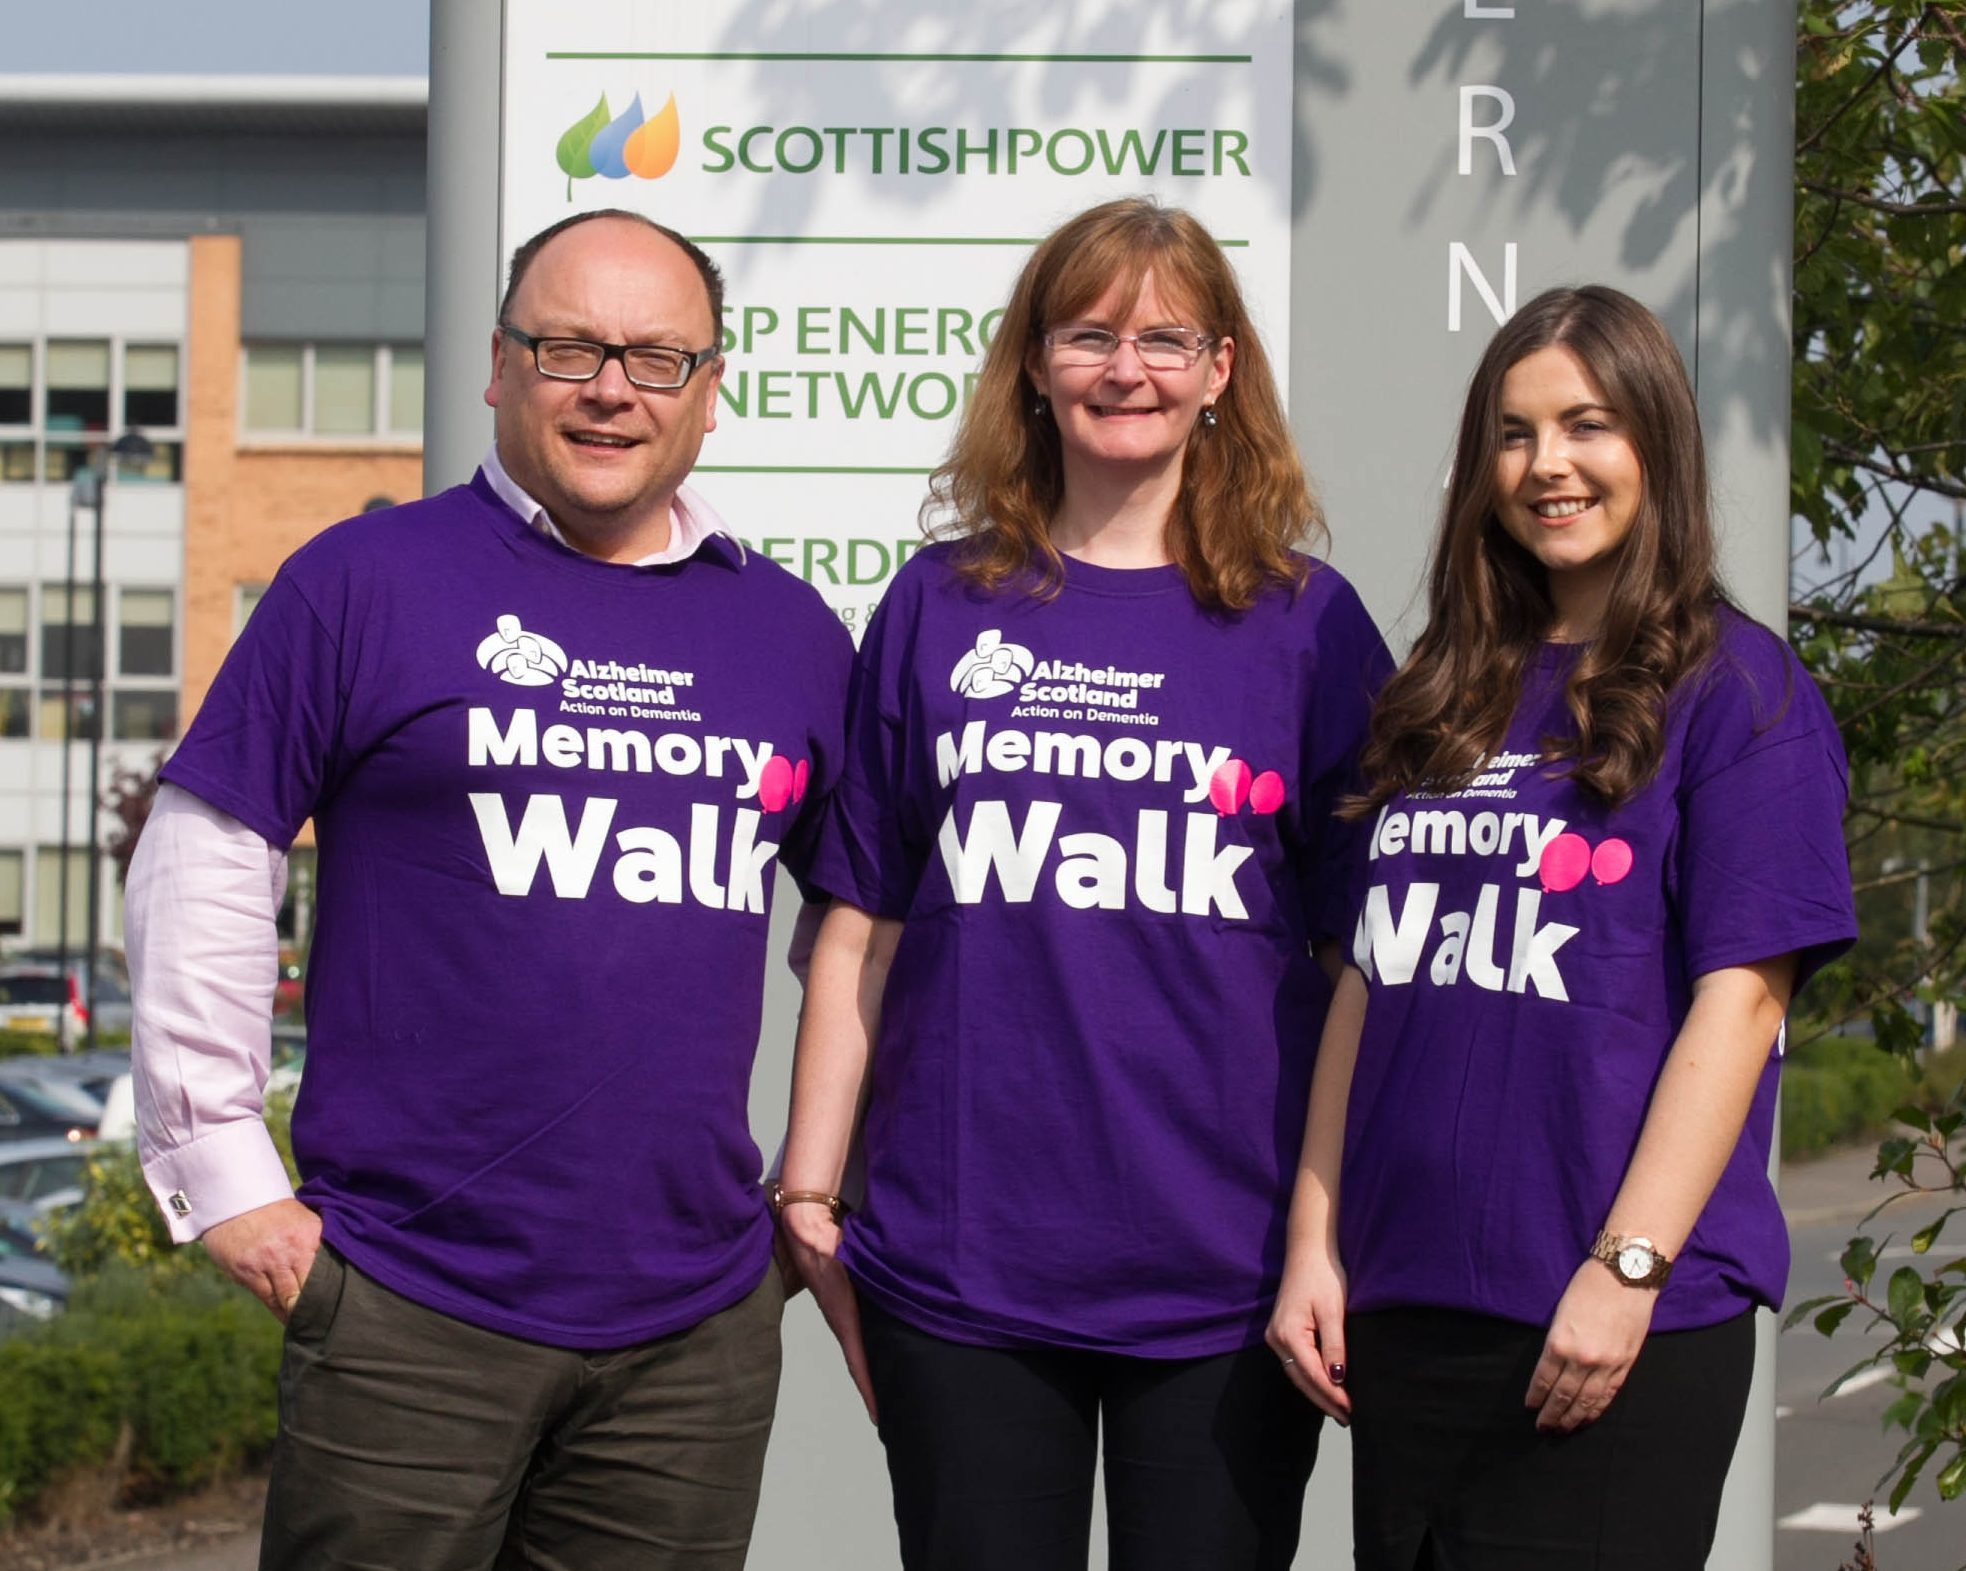 Scottish Power staff Eric Brunger, Cathie Hill and Laura Hopton take part in a Memory Walk (Chris Austin/DC Thomson)